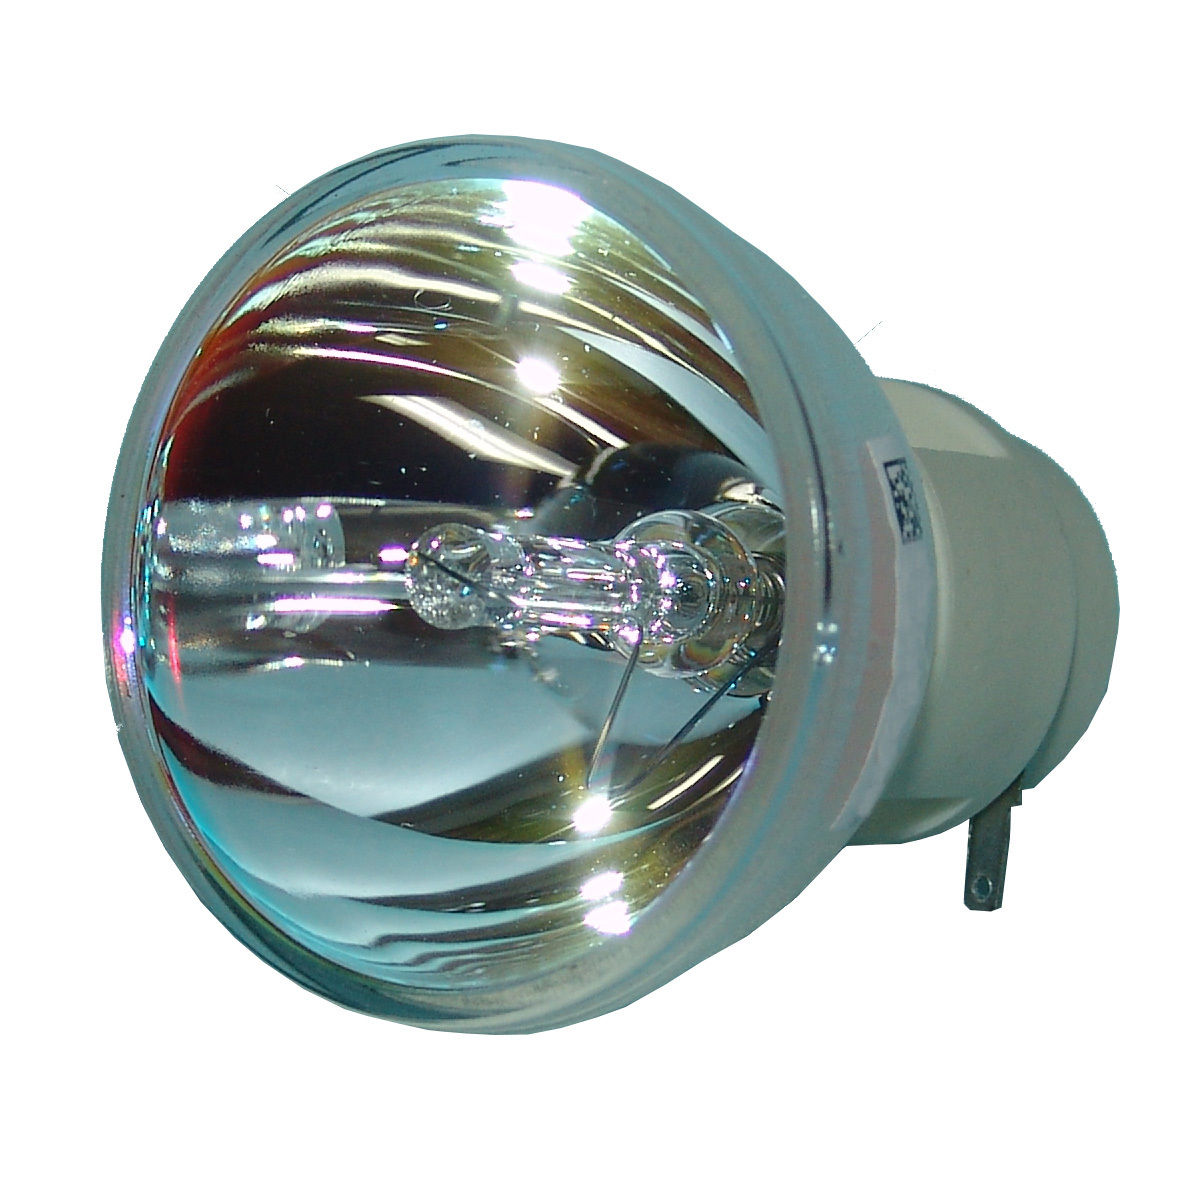 Compatible Bare Bulb 5J.J4G05.001 for Benq W1100 W1200 Projector Lamp Bulbs without housing replacement compatible bare bulb 5j 08g01 001 lamp for benq mp730 projector